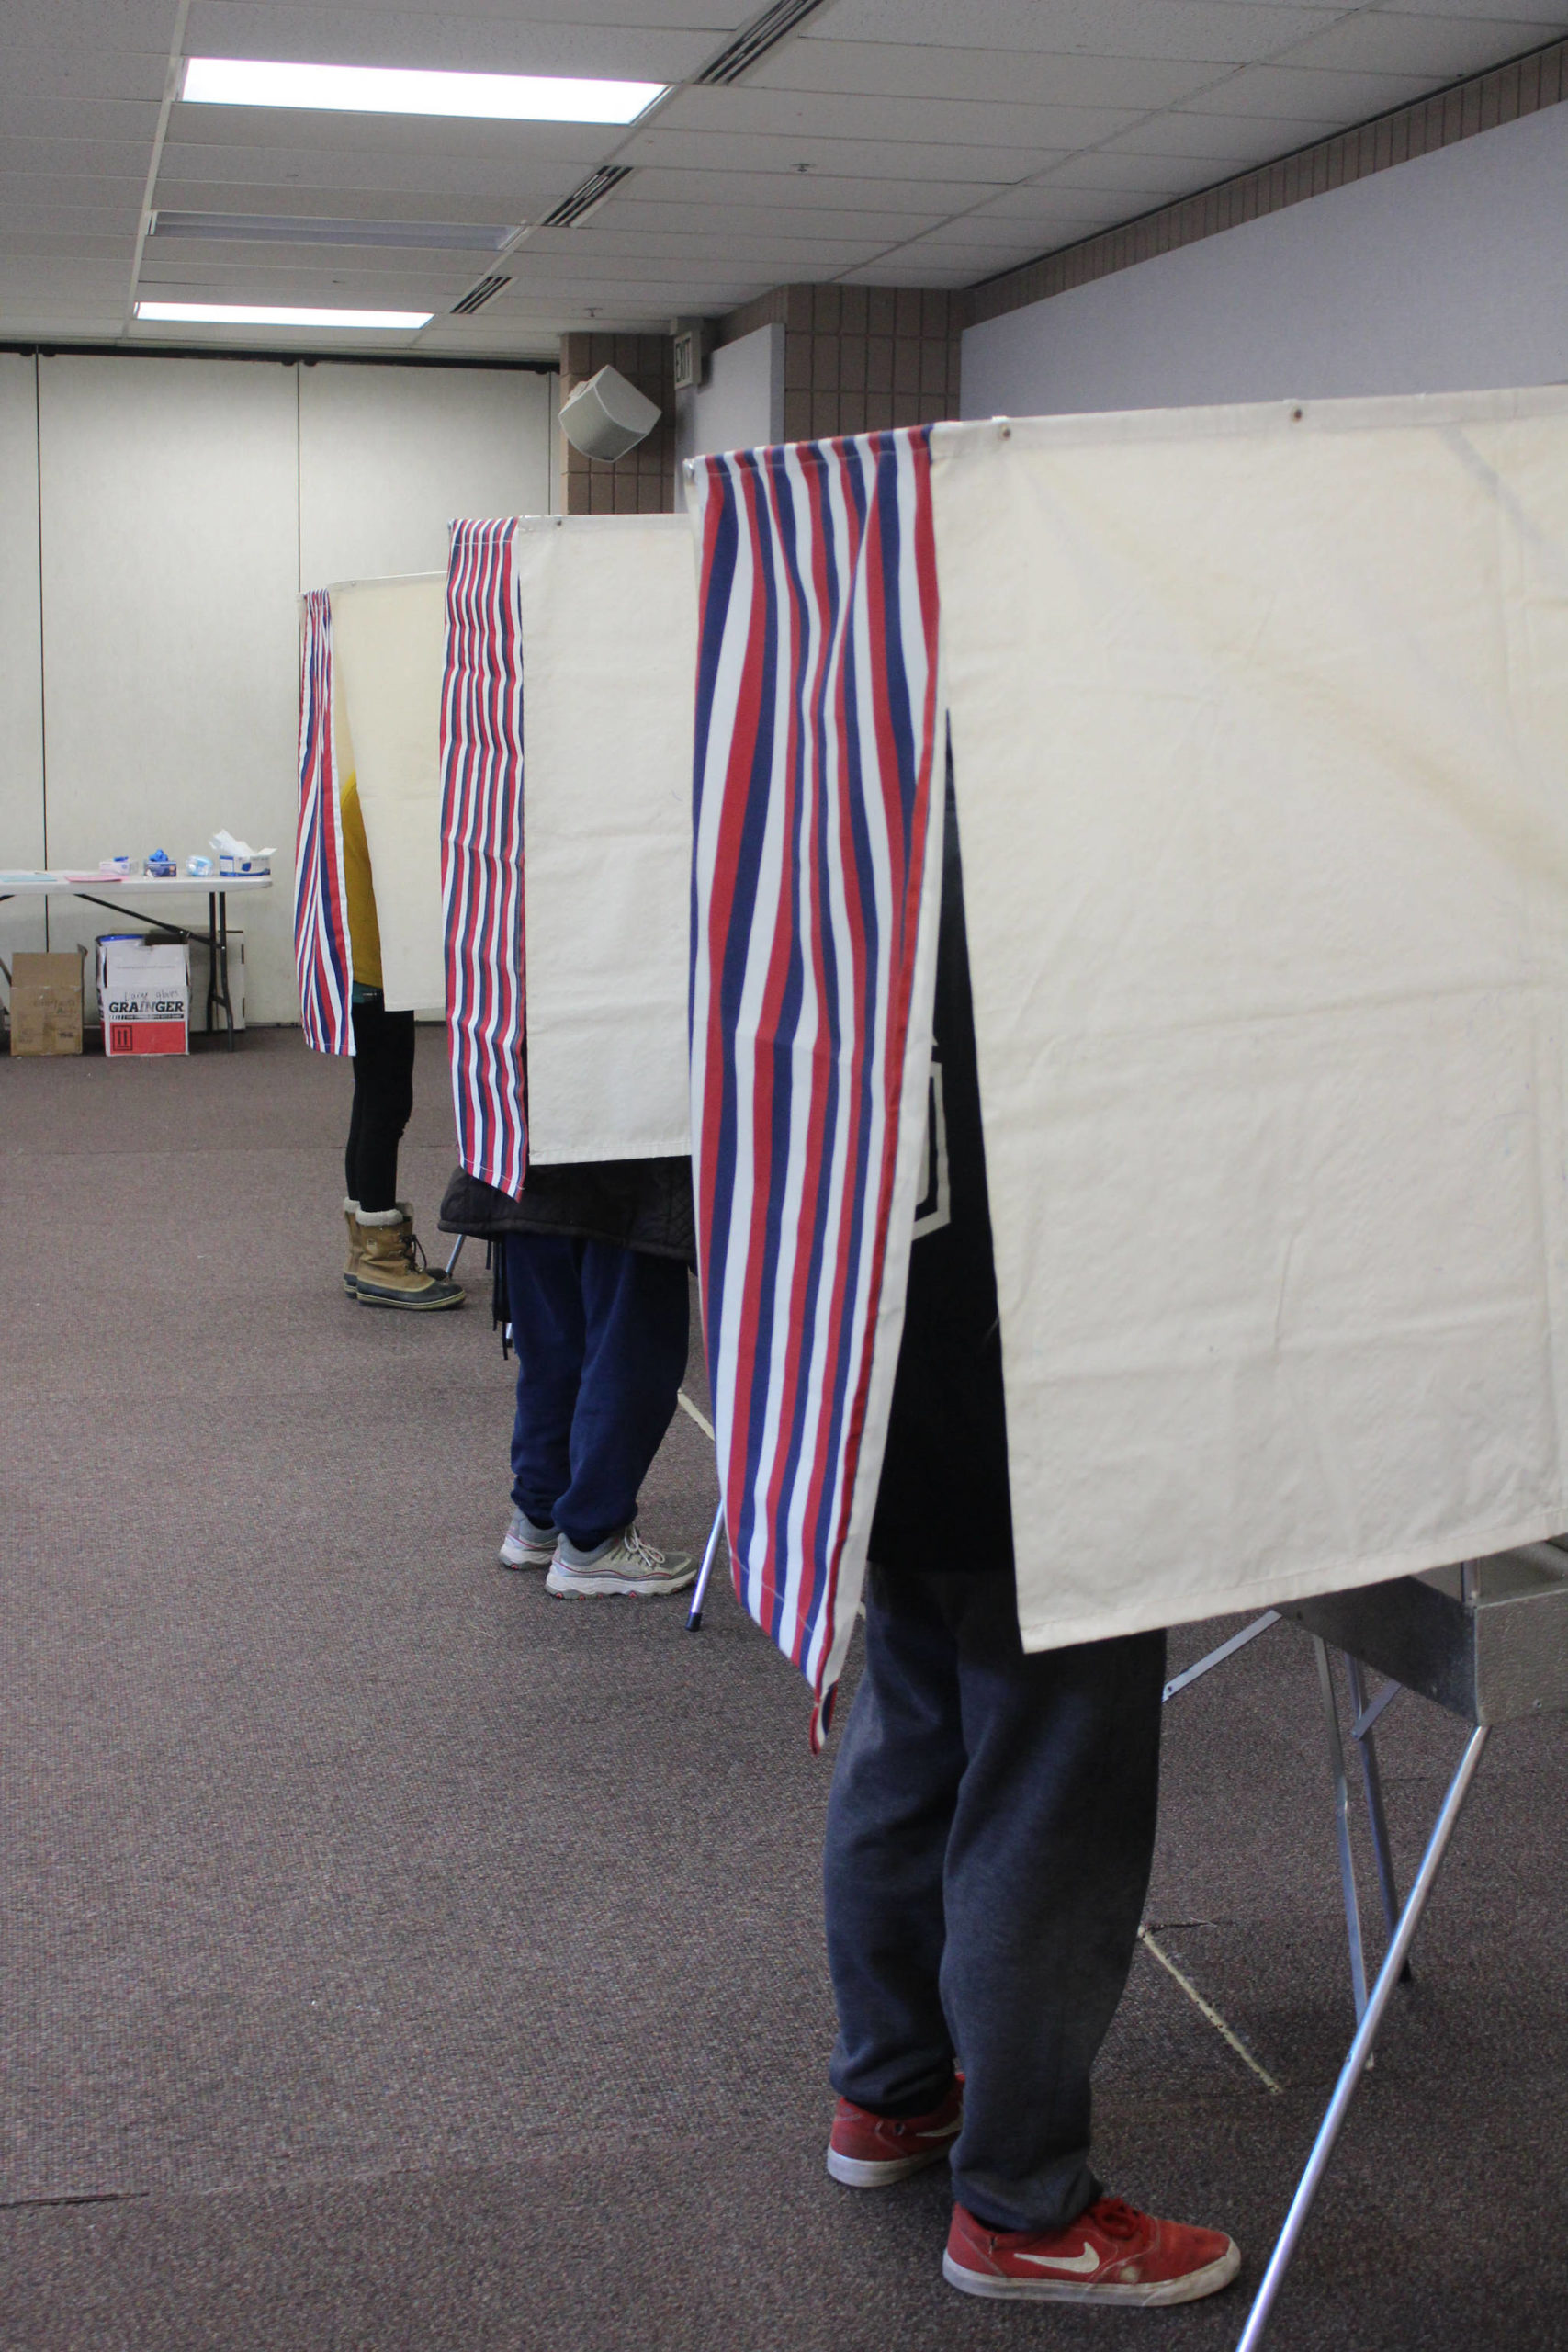 Voters fill out ballots in voting booths at the Soldotna Regional Sports Complex on Tuesday, Nov. 3 in Soldotna, Alaska. (Photo by Ashlyn O'Hara/Peninsula Clarion)